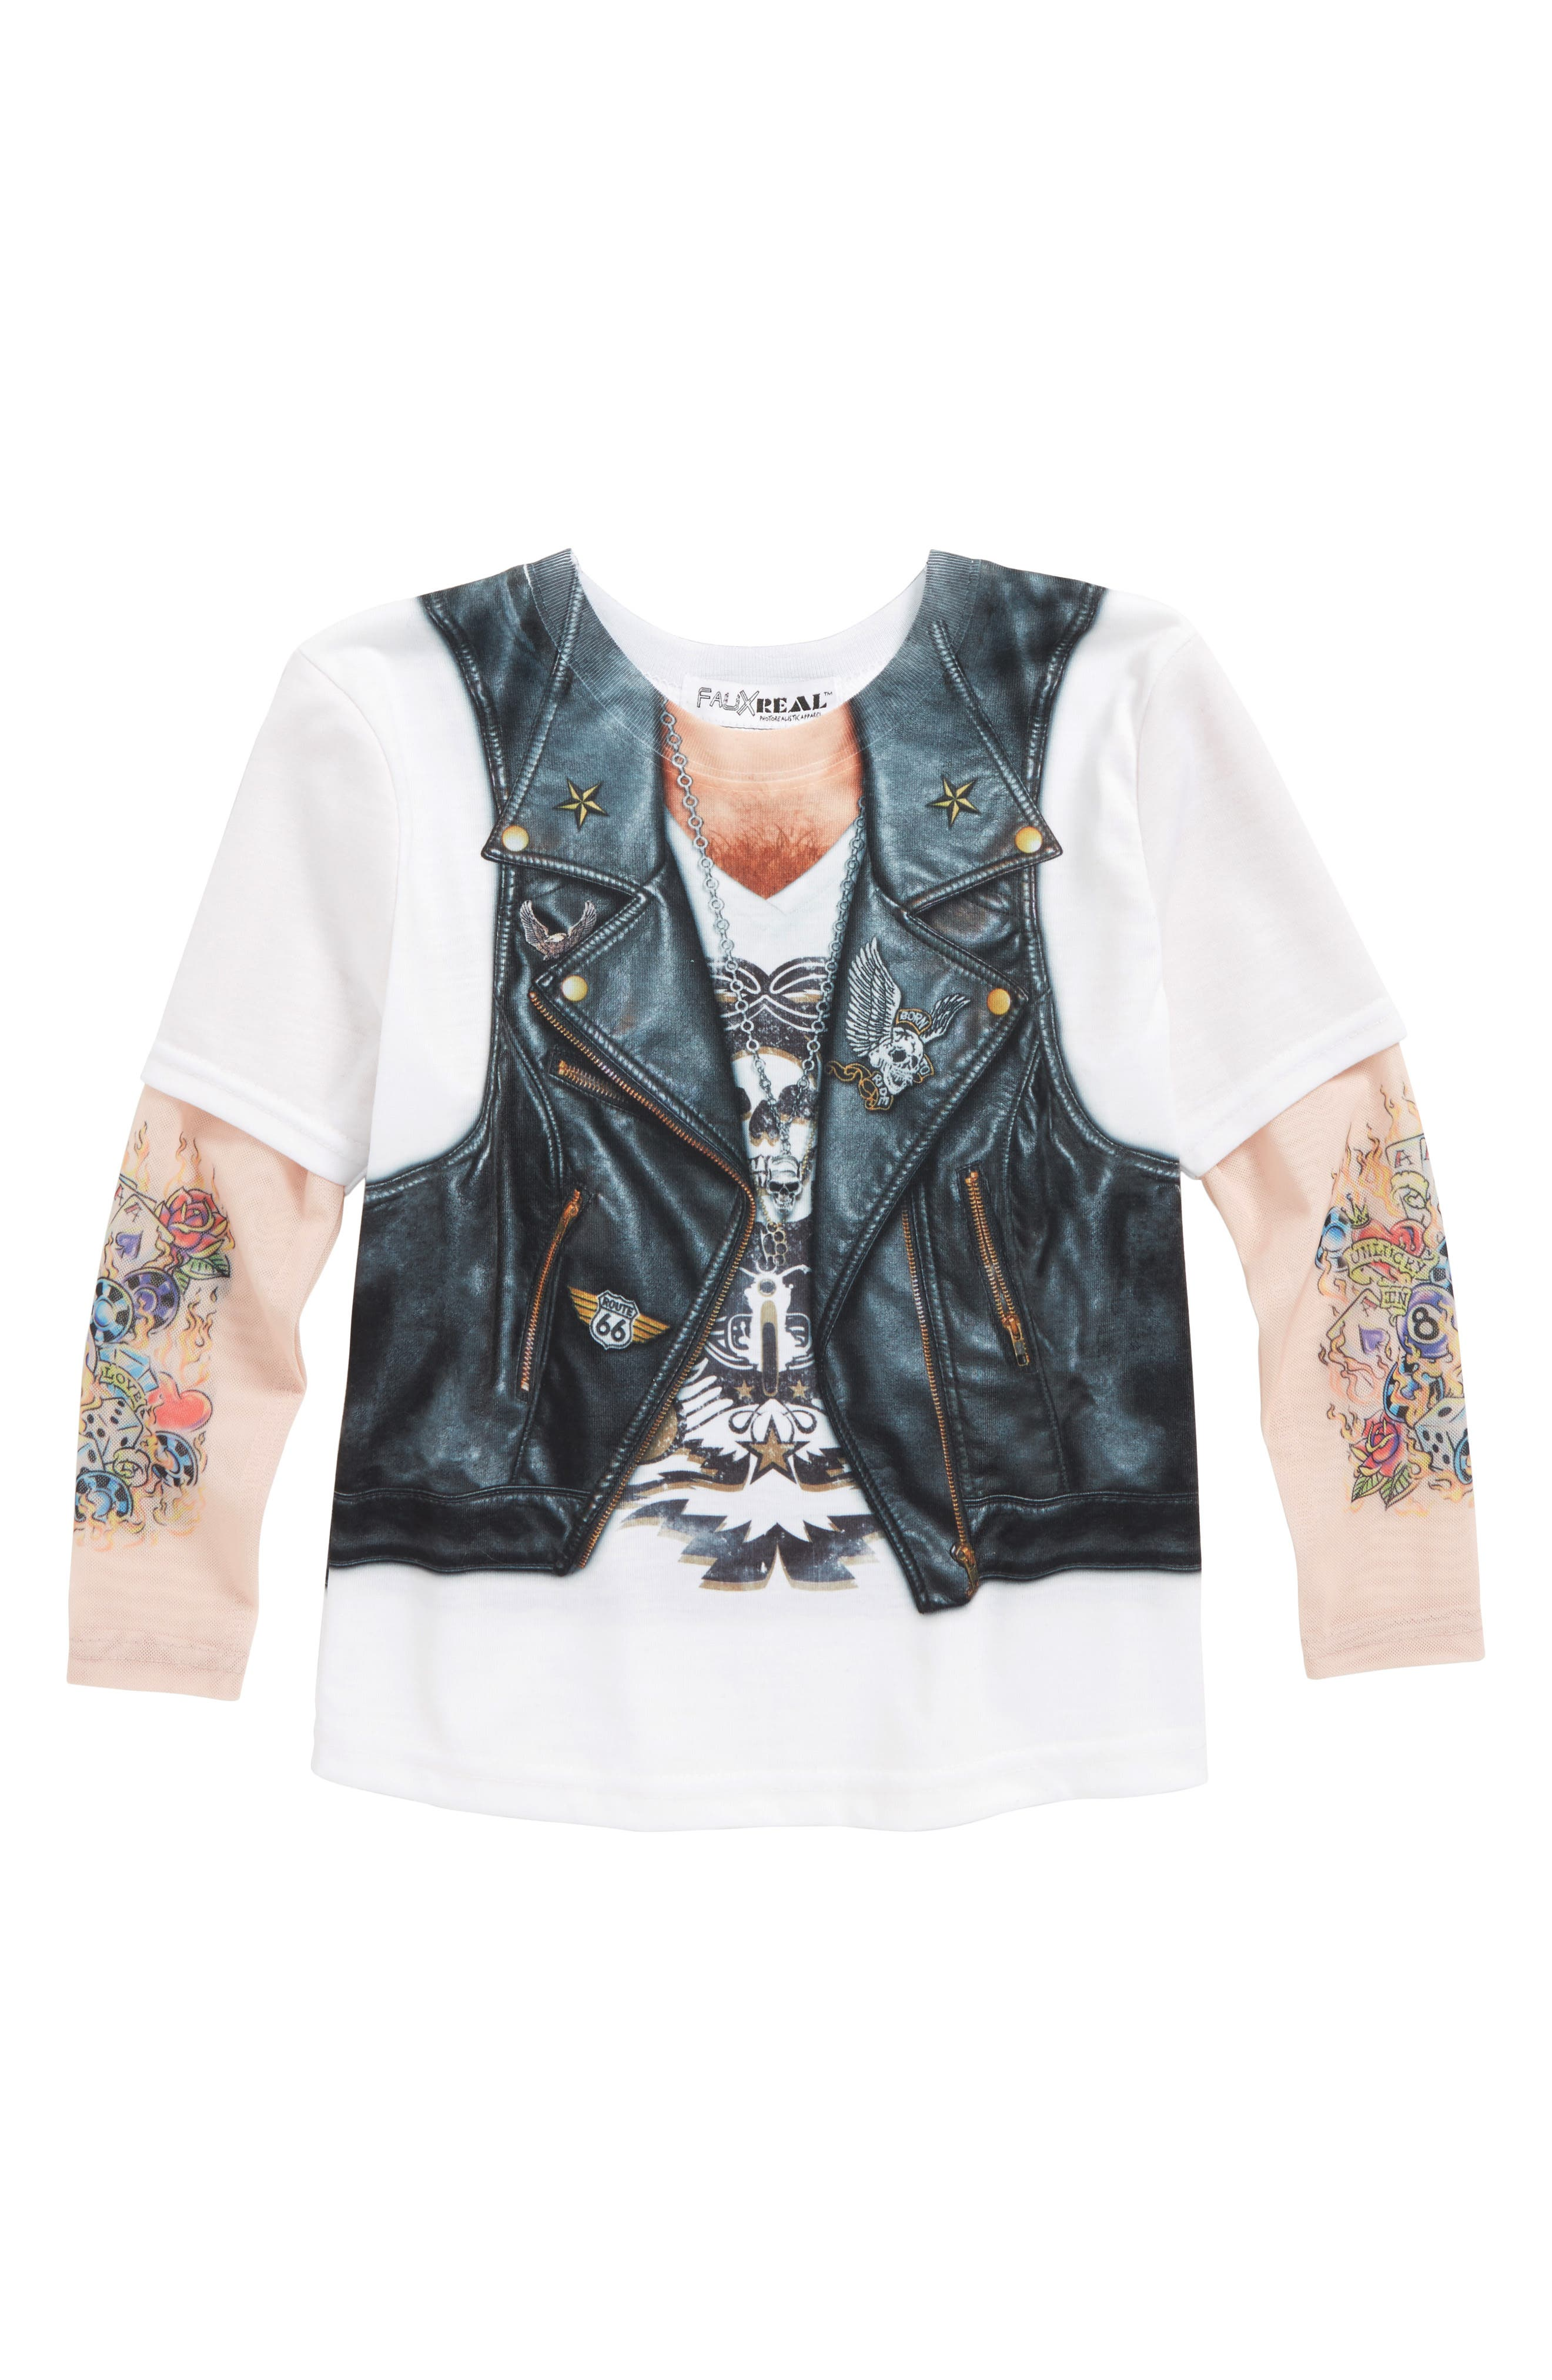 Main Image - Faux Real Biker Print T-Shirt with Tattoo Print Sleeves (Toddler Boys)